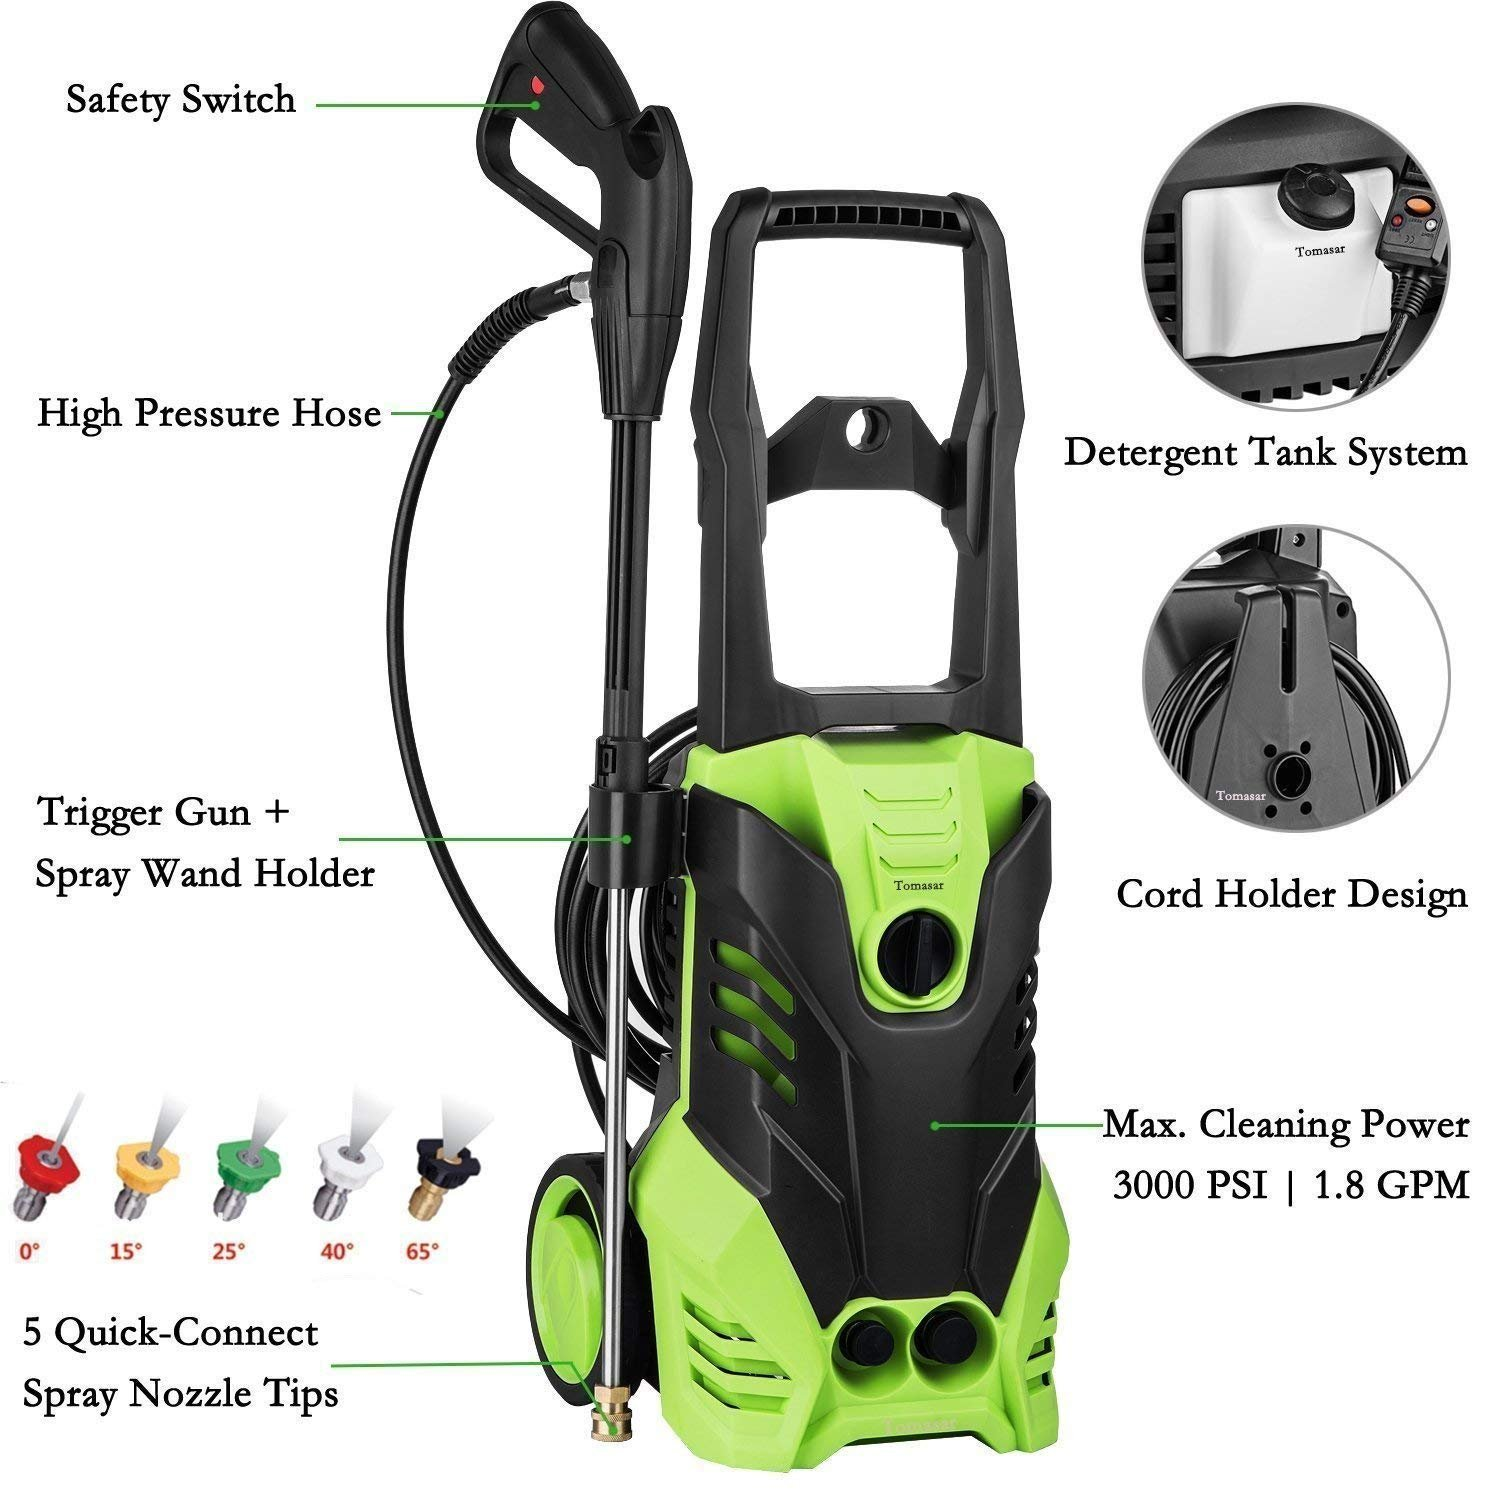 Dorfin Electric High Pressure Power Washer, 3000 PSI Professional Washer Cleaner Machine 5 Quick-Connect Spray Nozzles, 1800W Rolling Wheels, 1.80 GPM